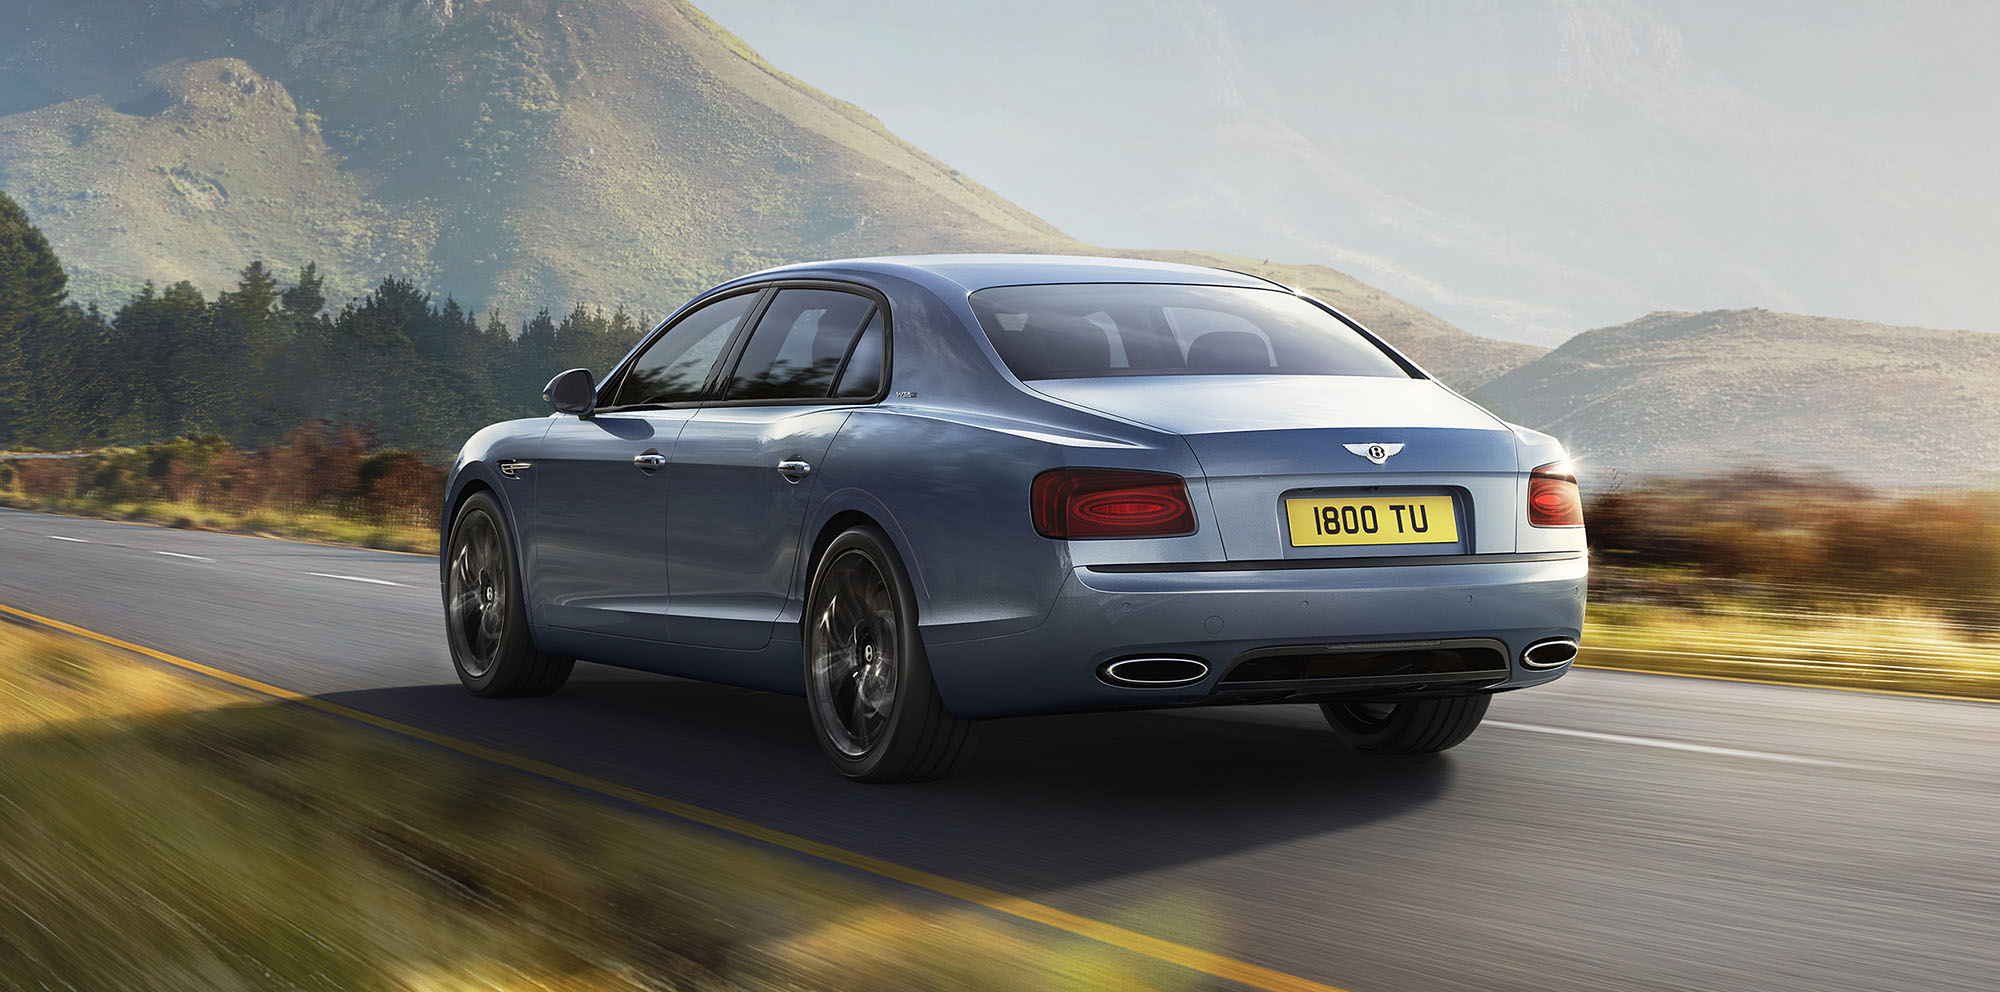 2017 bentley flying spur w12 s revealed ahead of paris debut photos 1 of 5. Black Bedroom Furniture Sets. Home Design Ideas